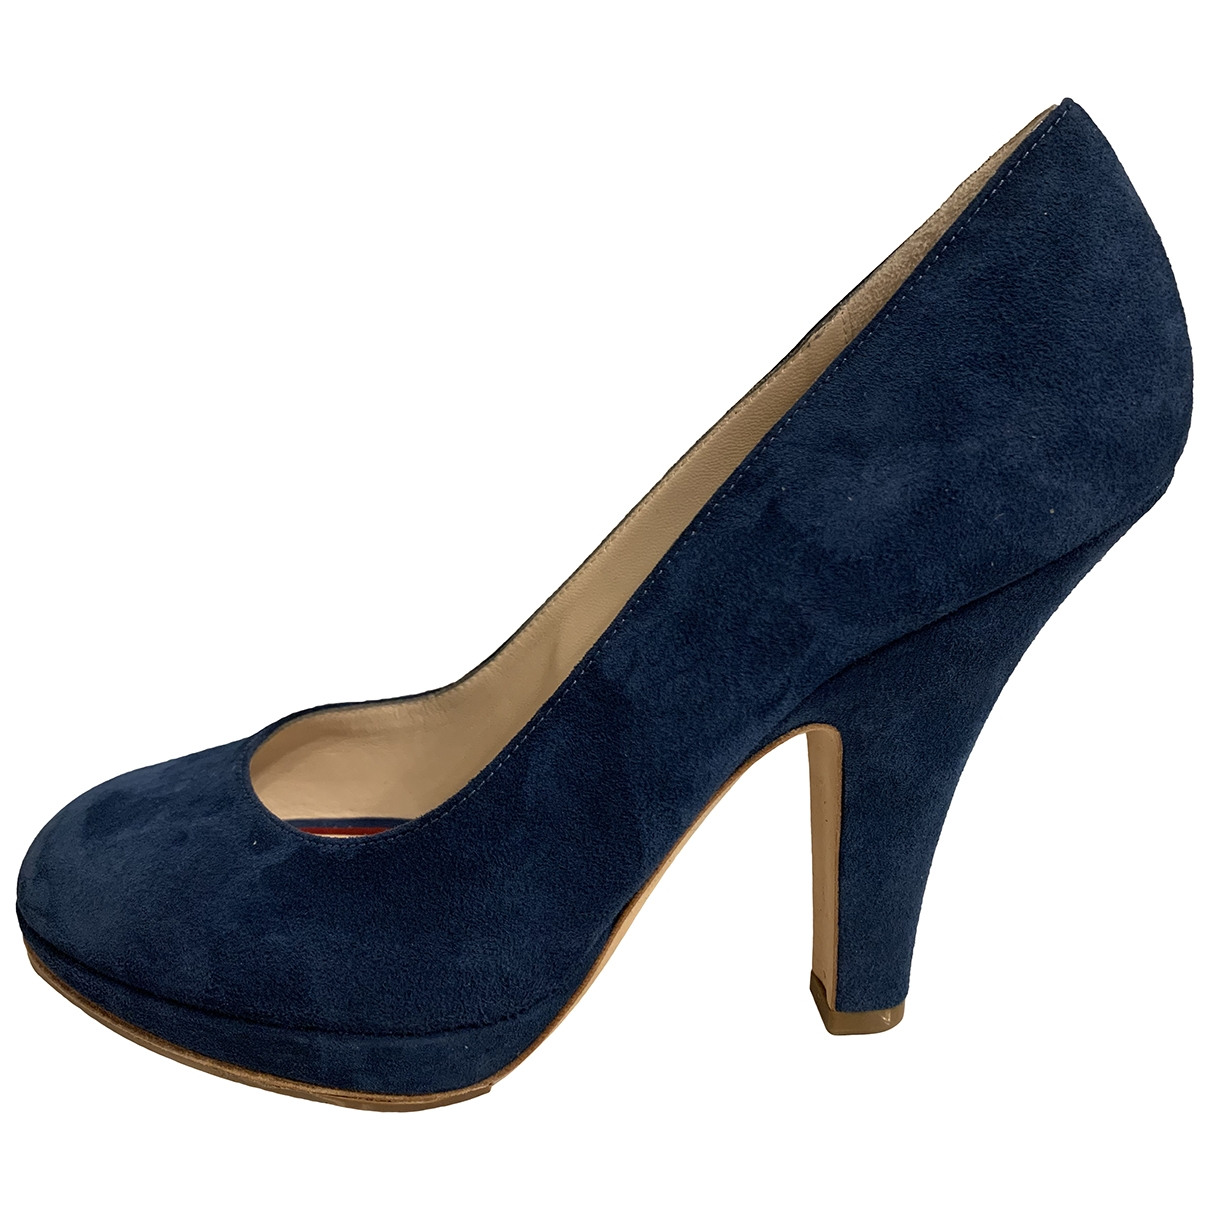 Celine Sharp Blue Suede Heels for Women 38 EU